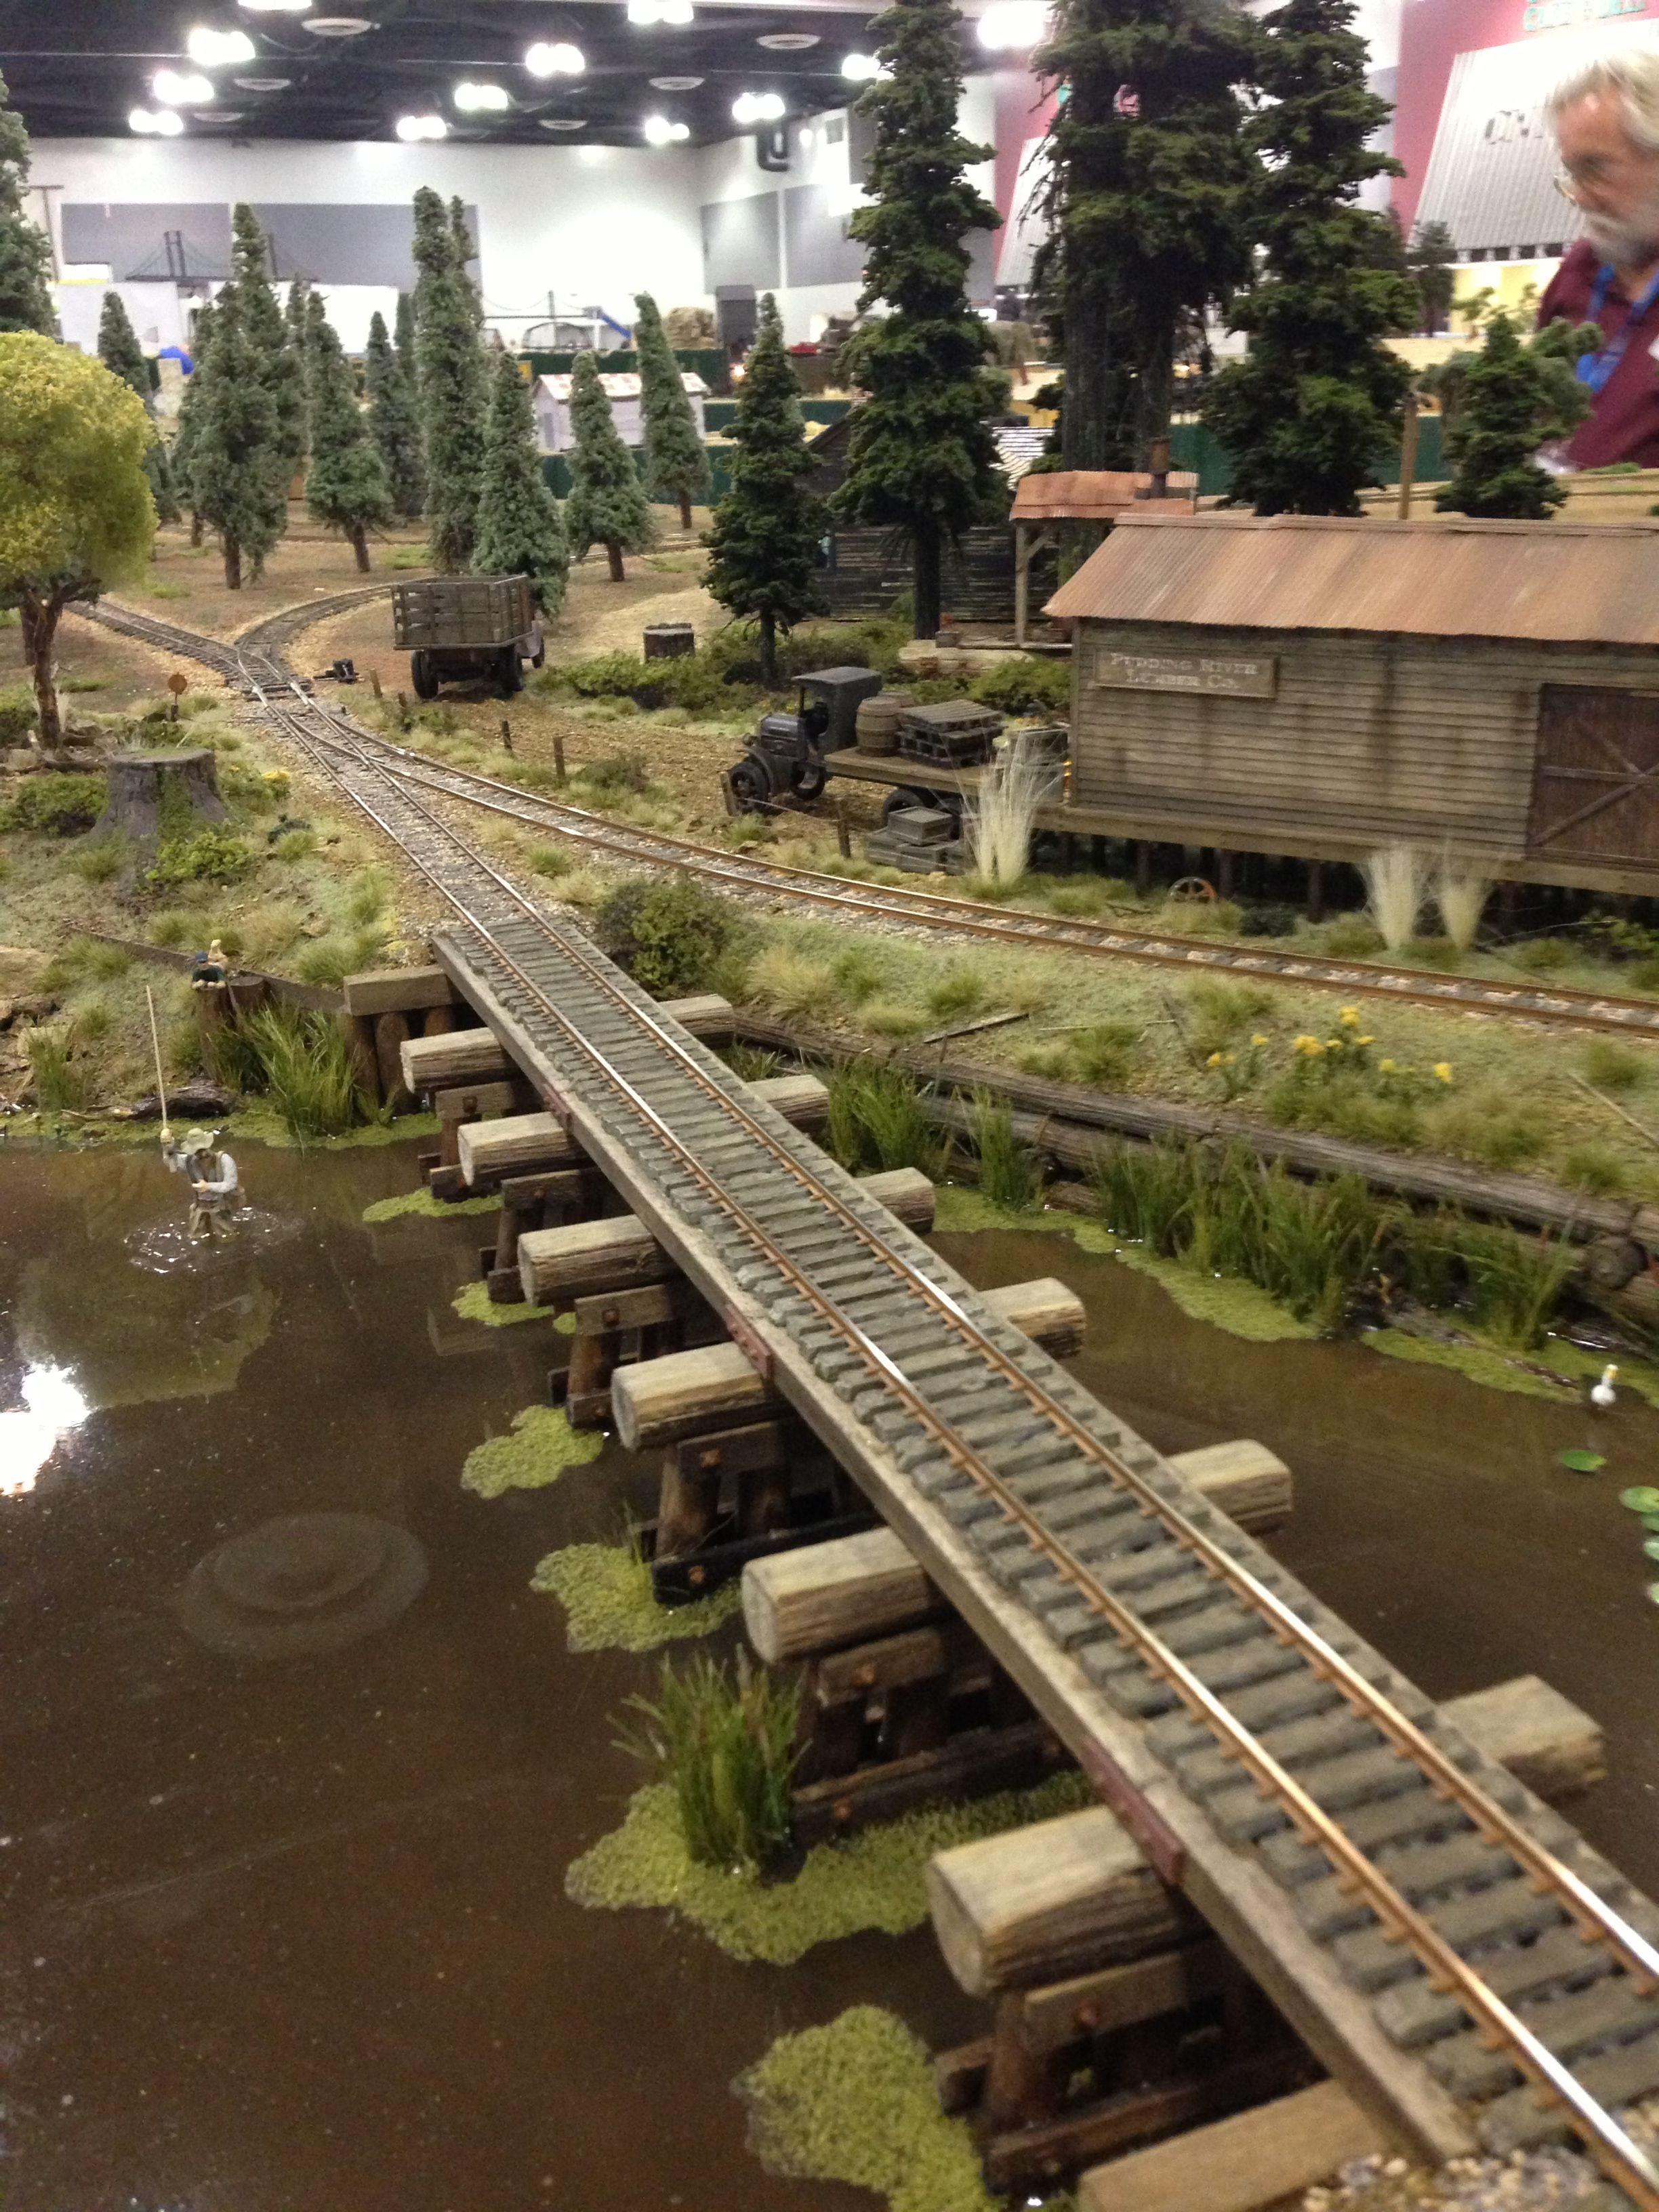 Pudding River Lumber Co Slough Trestle On30 Modular Rr By Kevin